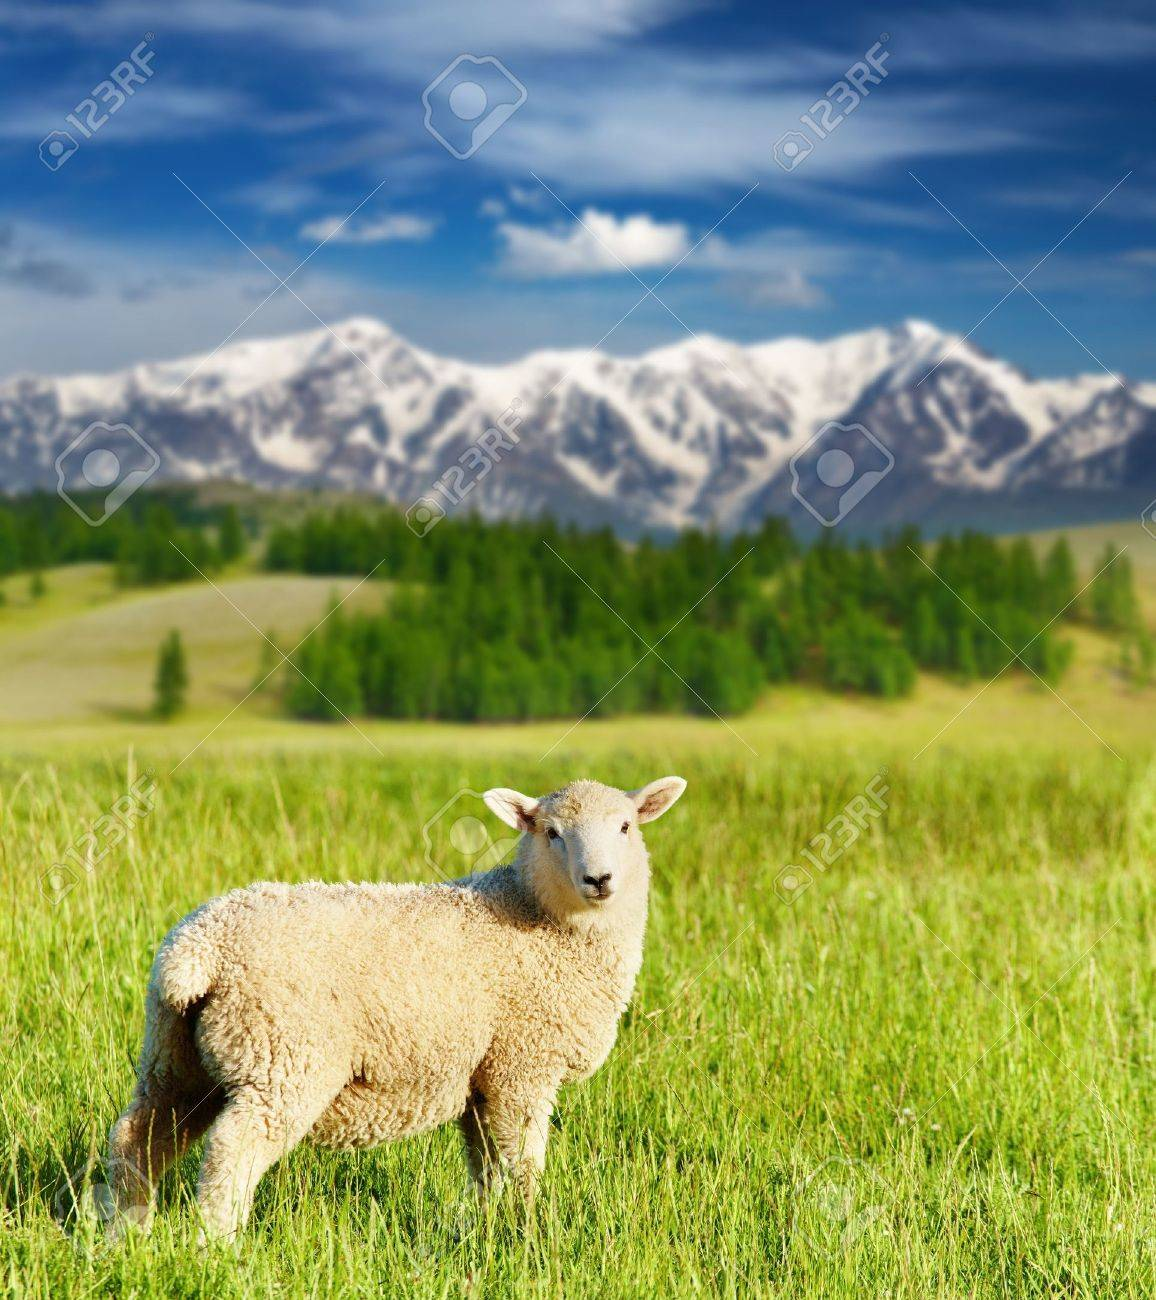 Landscape with grazing lamb and snowy mountains - 7596754